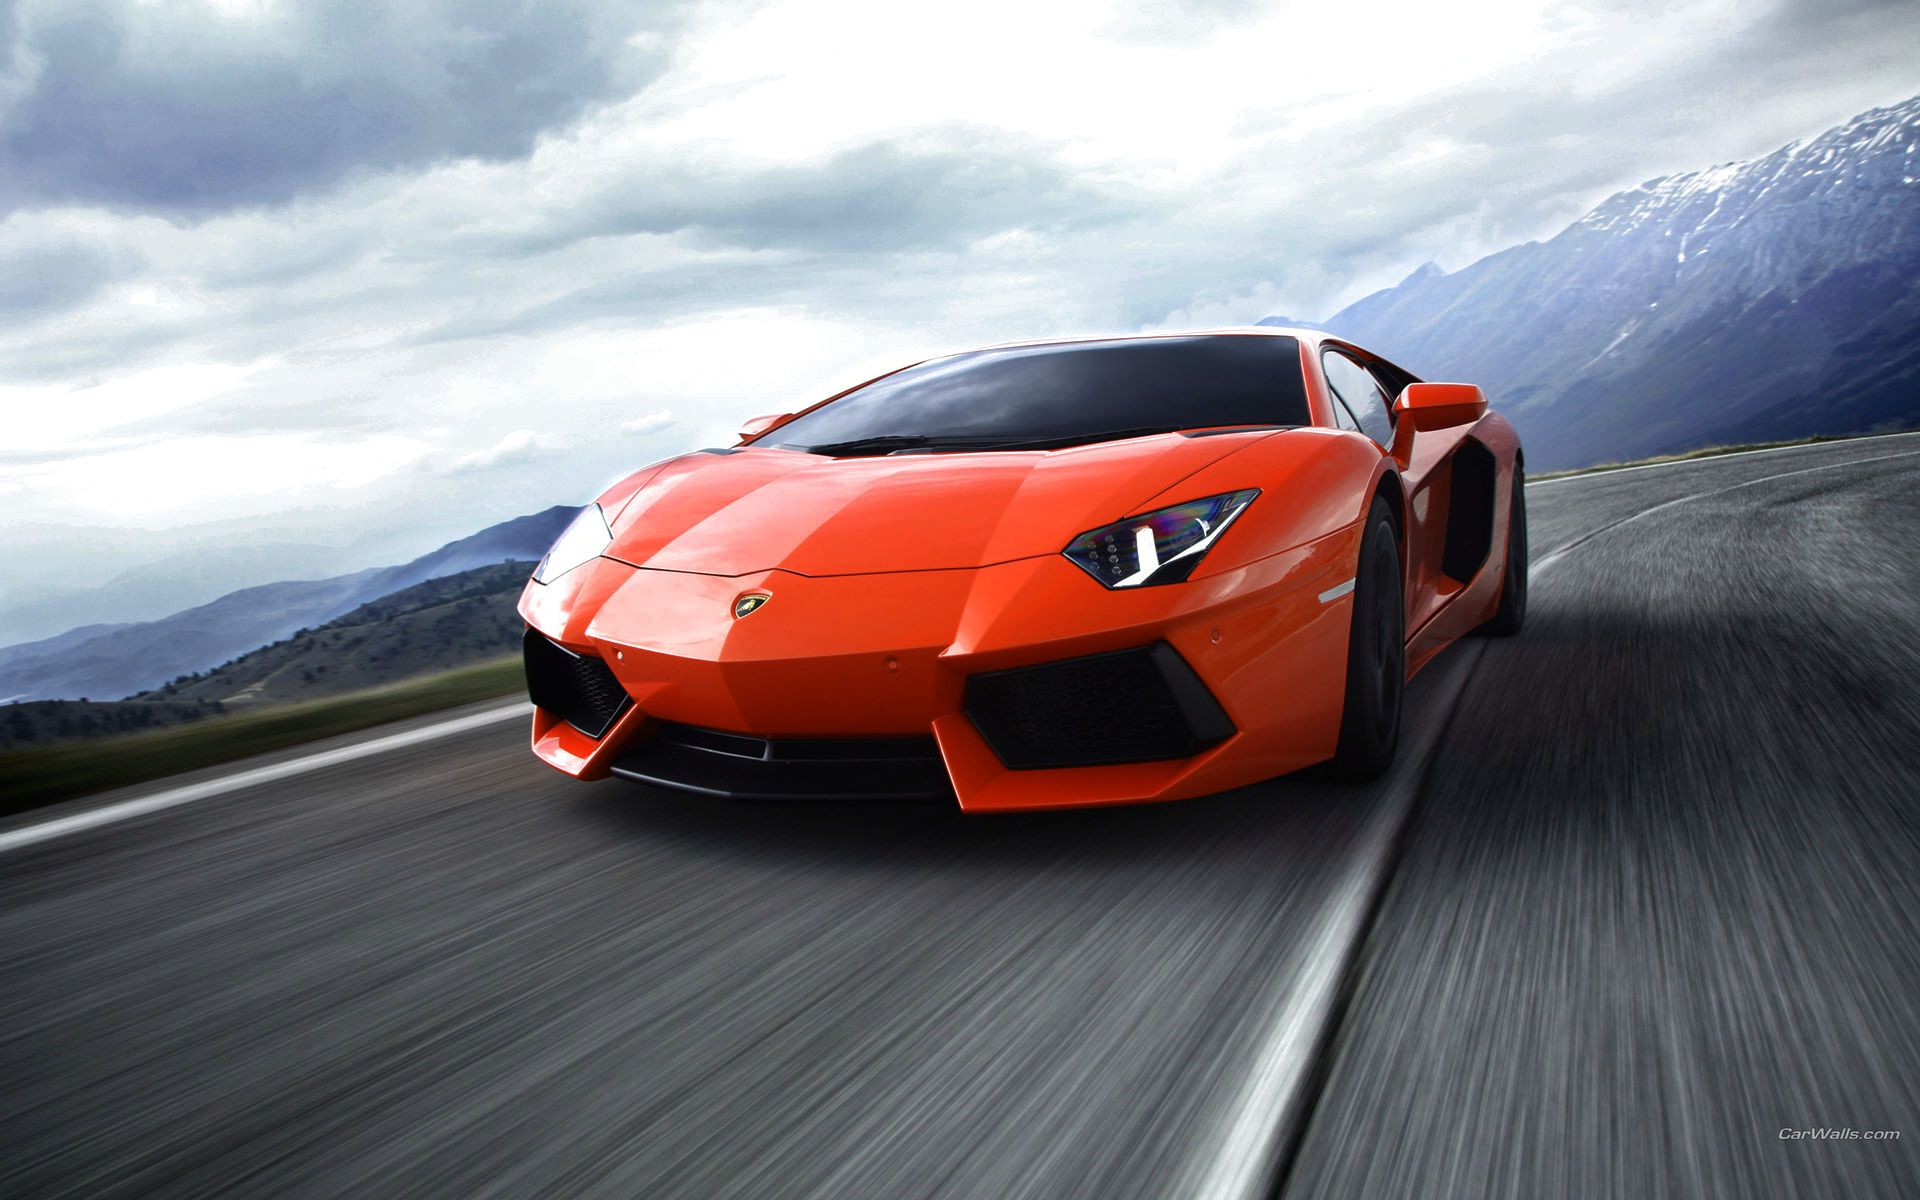 21 Super Sport Car Wallpaper And Clear Up Your Auto Repair Questions With  These Tips